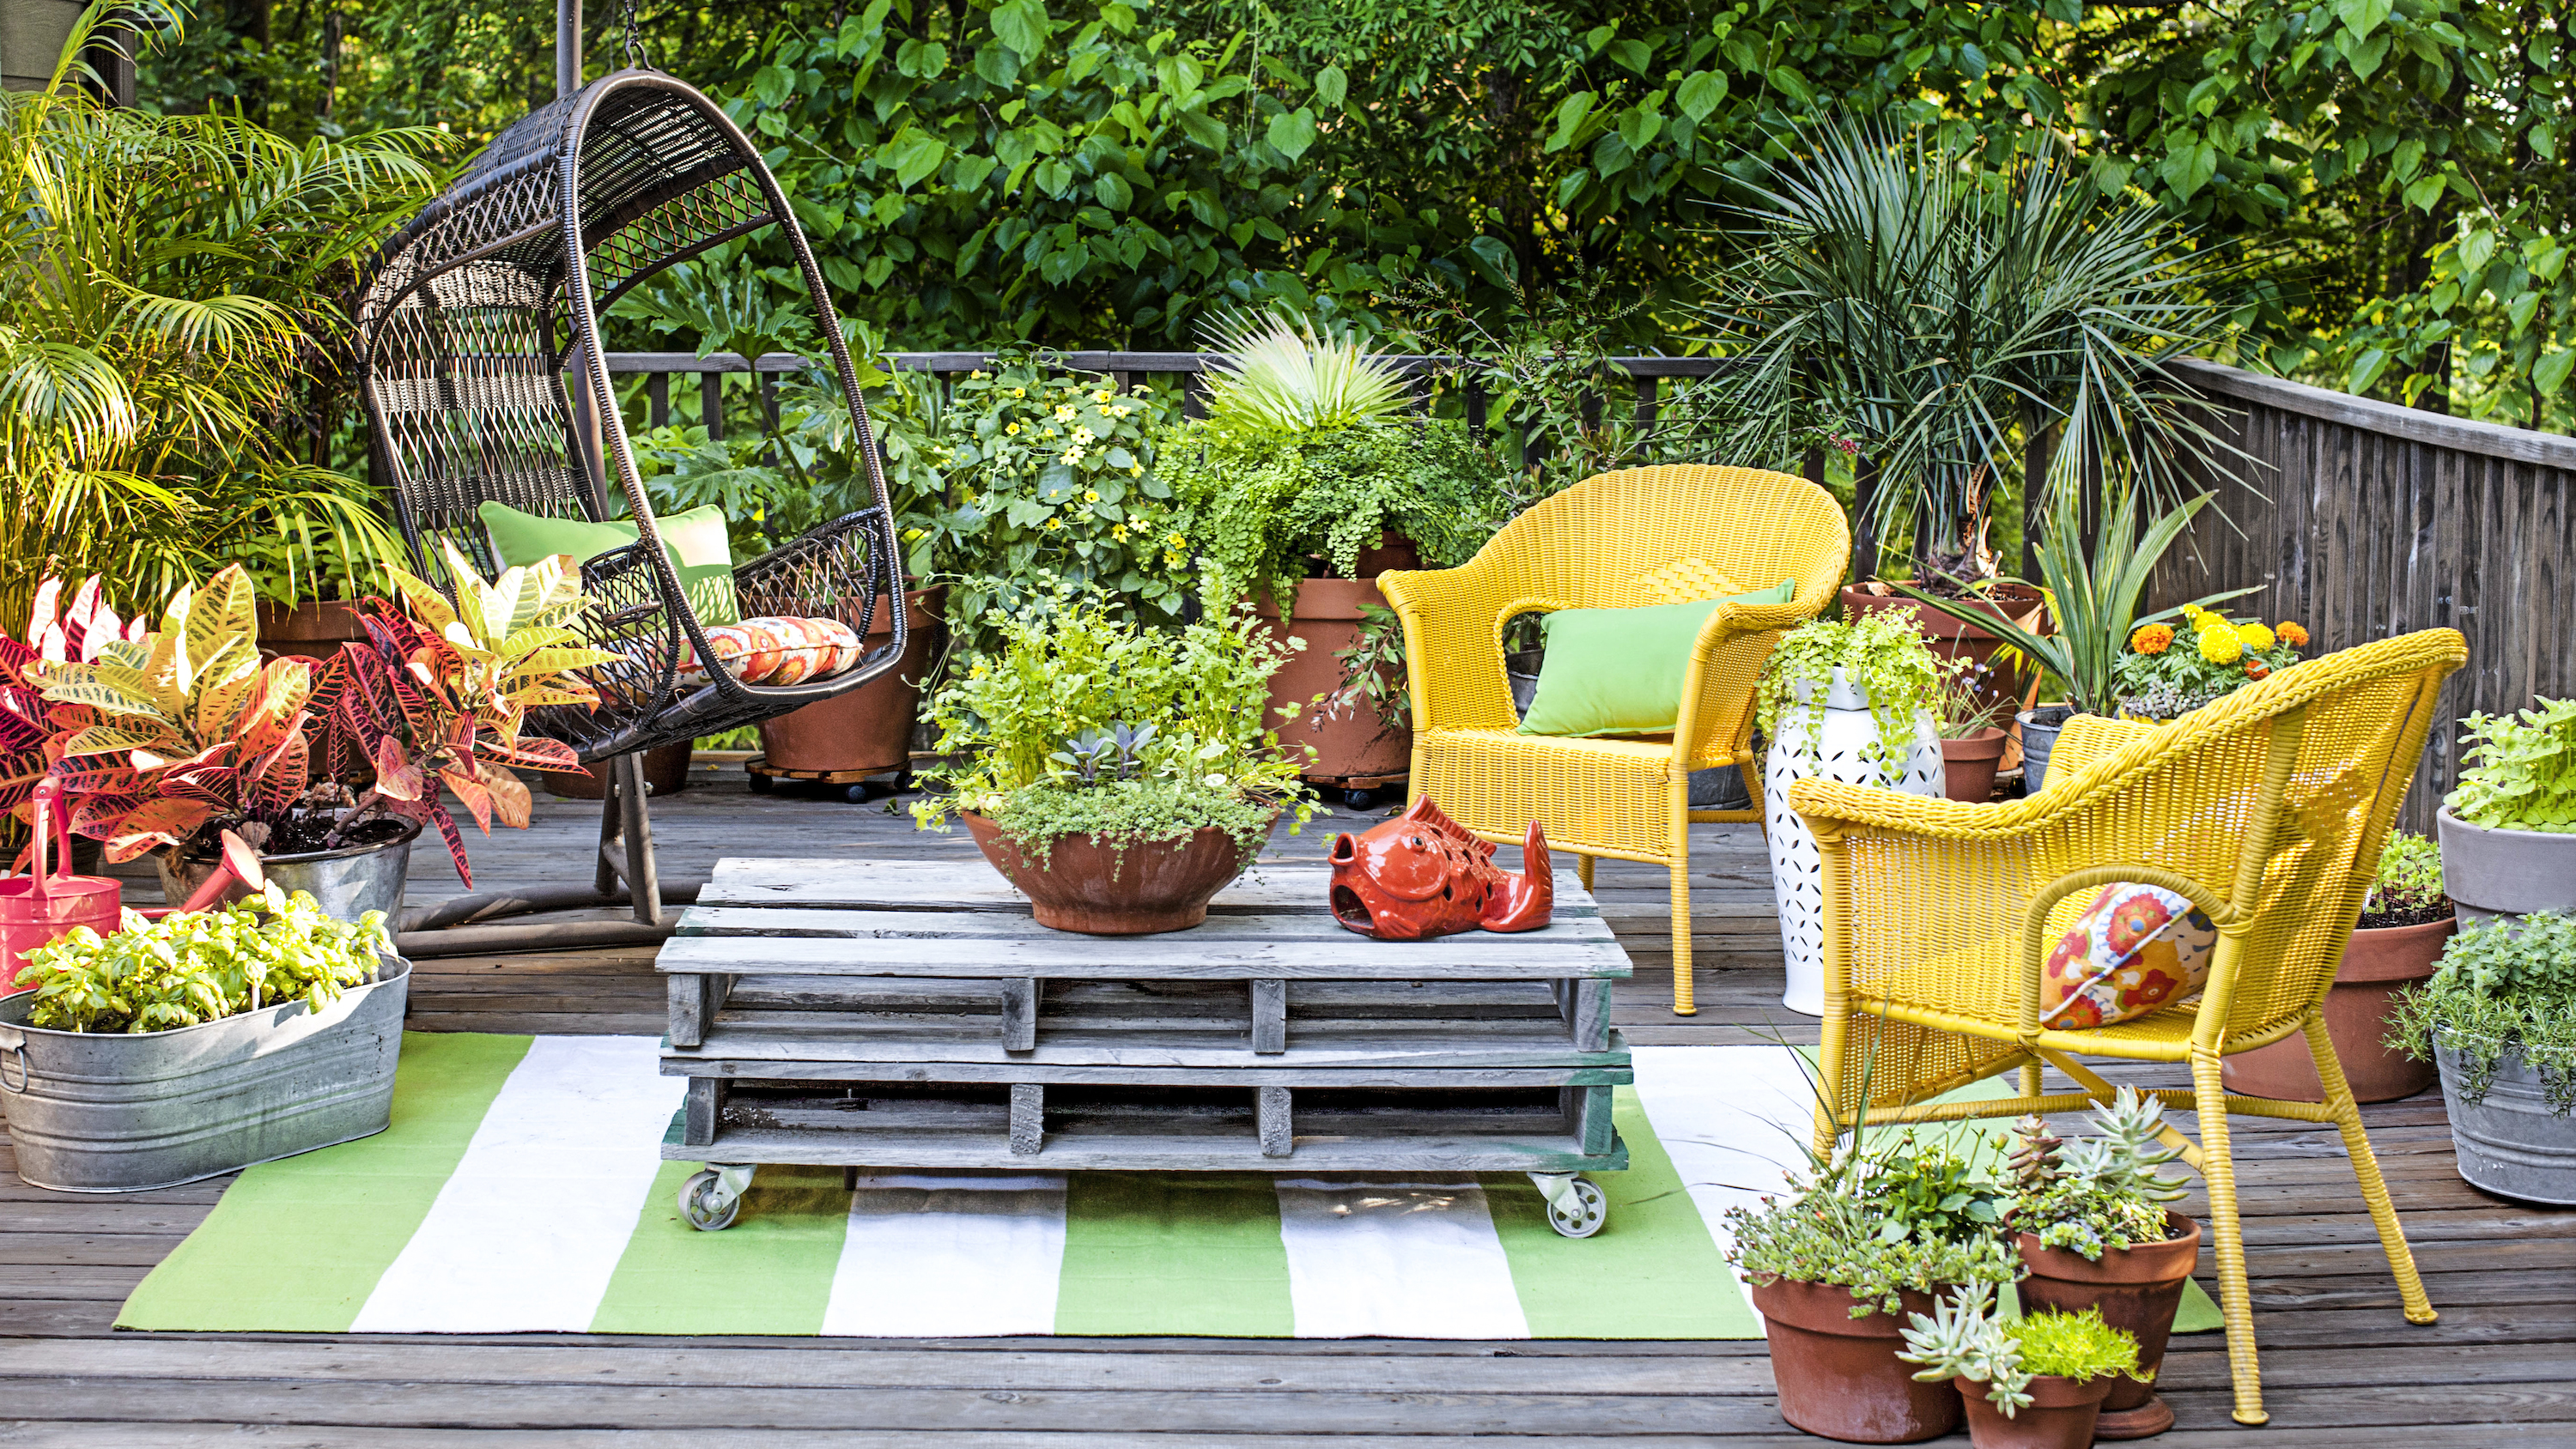 40 small garden ideas small garden designs - Patio Garden Ideas